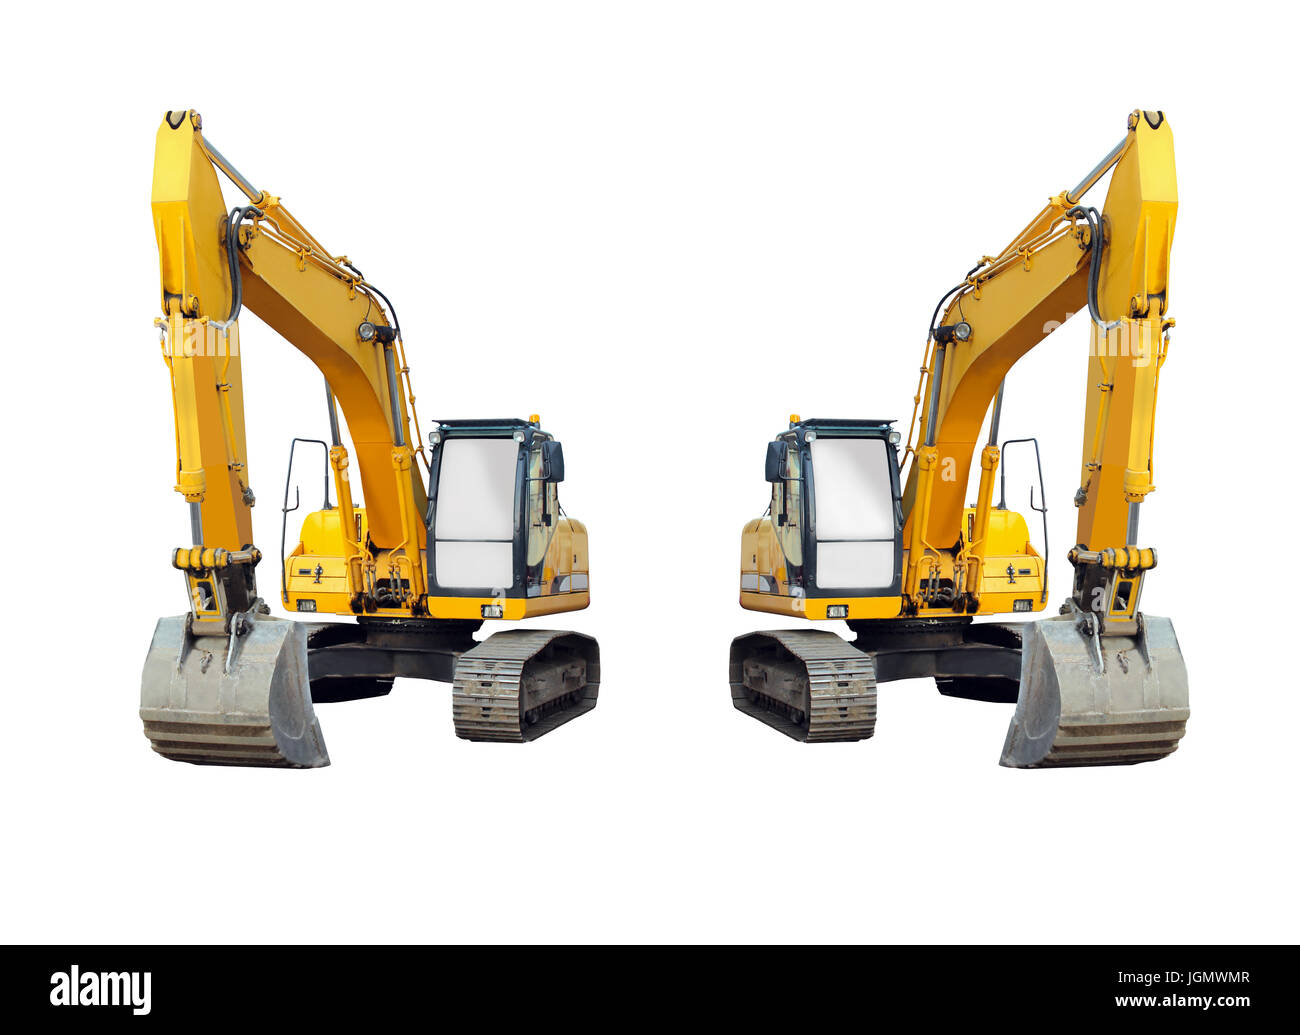 two excavators isolated on the white background - Stock Image